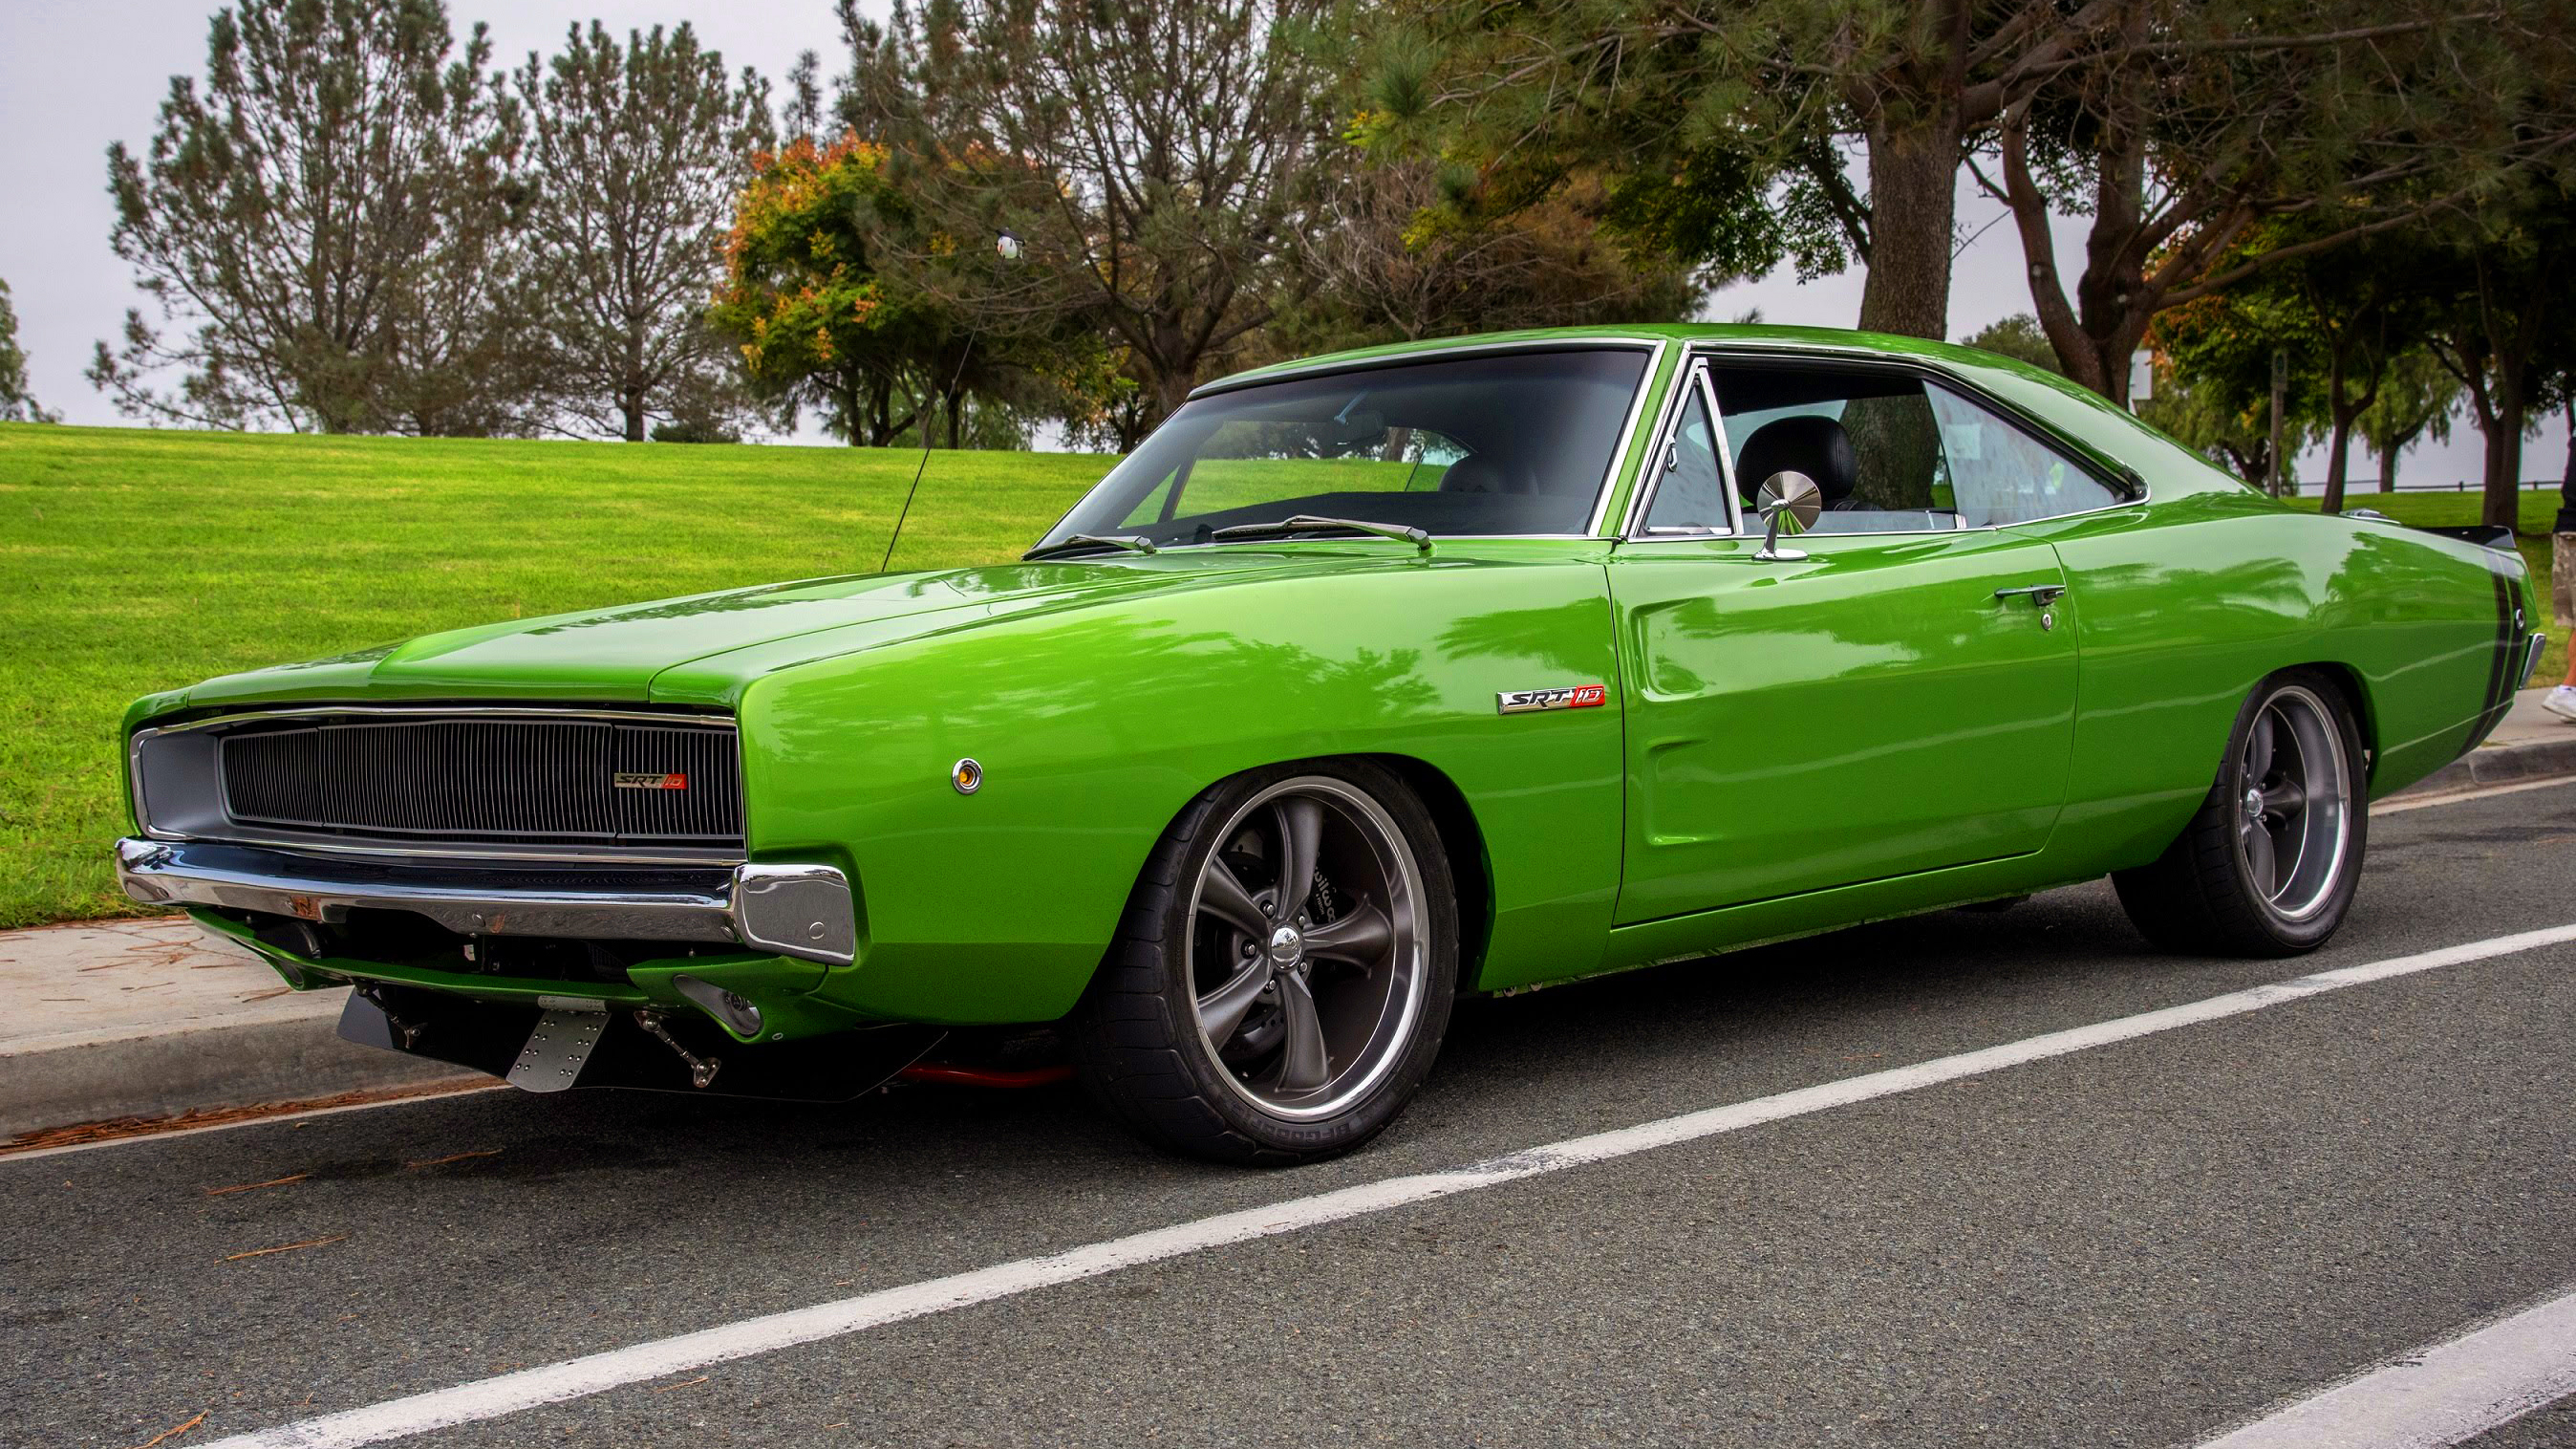 This Viper V10 Powered 1968 Dodge Charger SRT10 is Simply Amazing